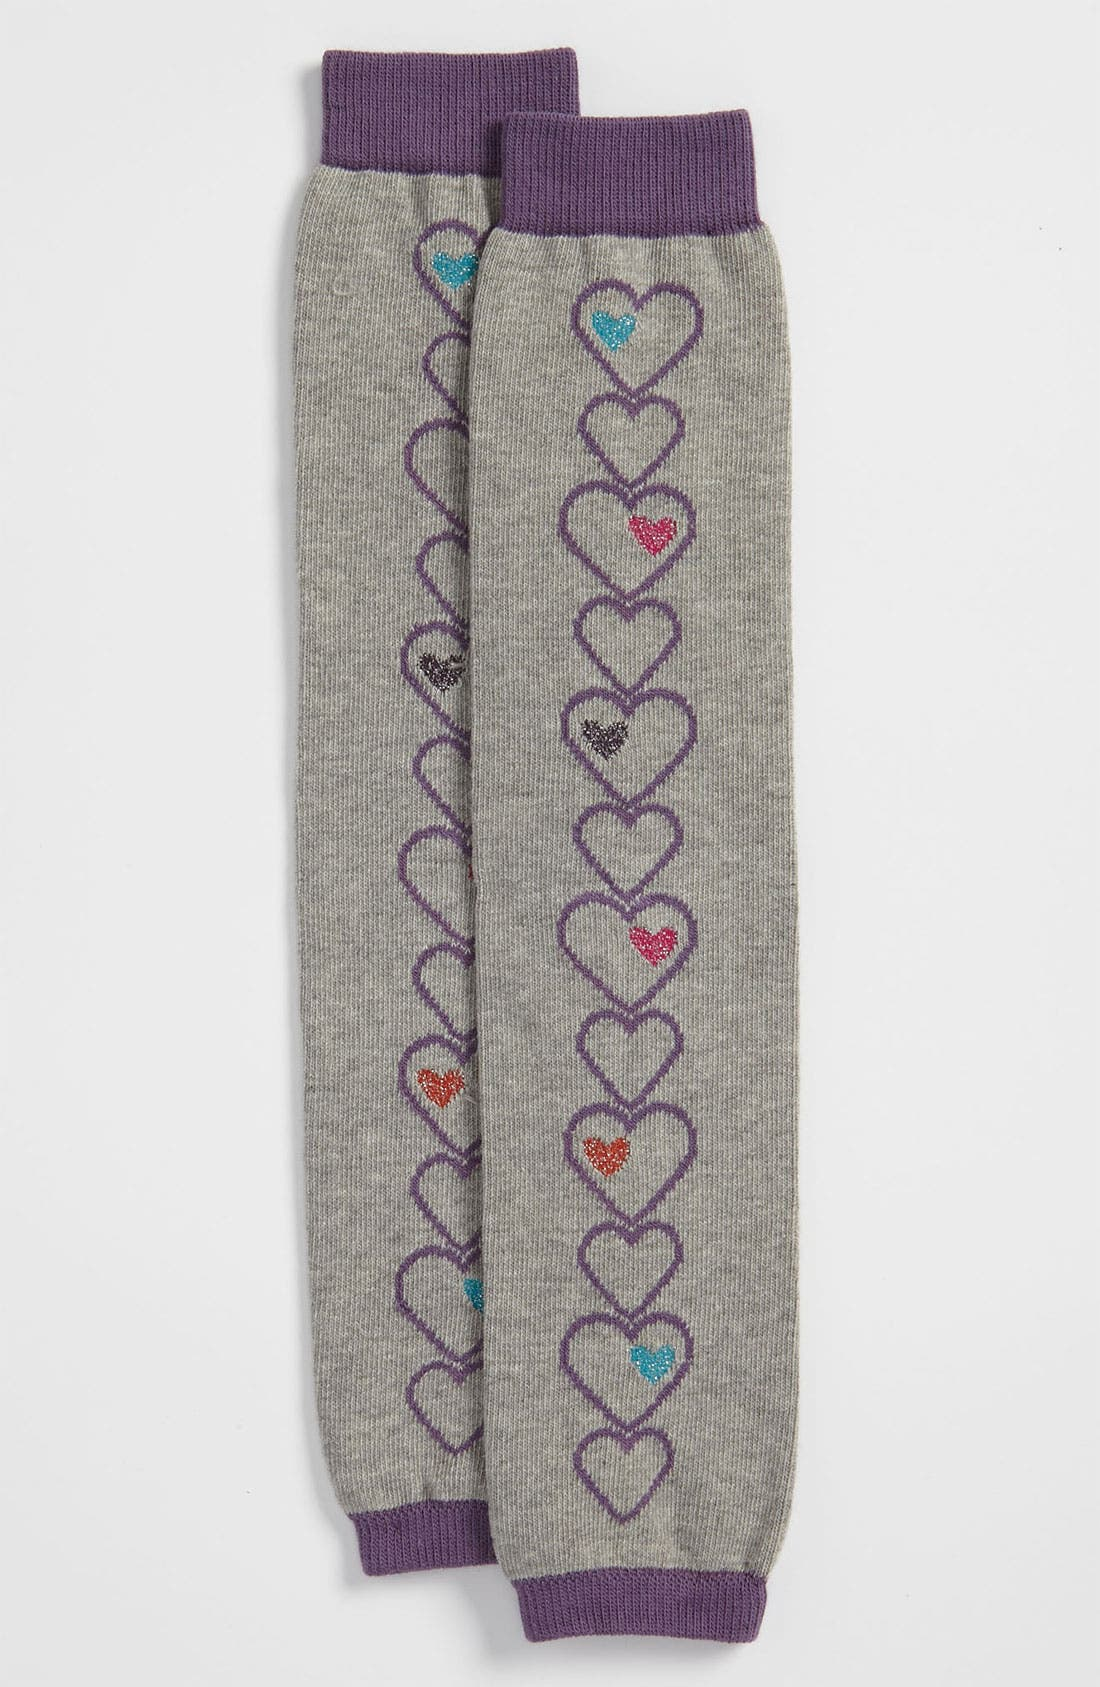 Main Image - Nordstrom 'Linear Hearts' Leg Warmers (Little Girls)